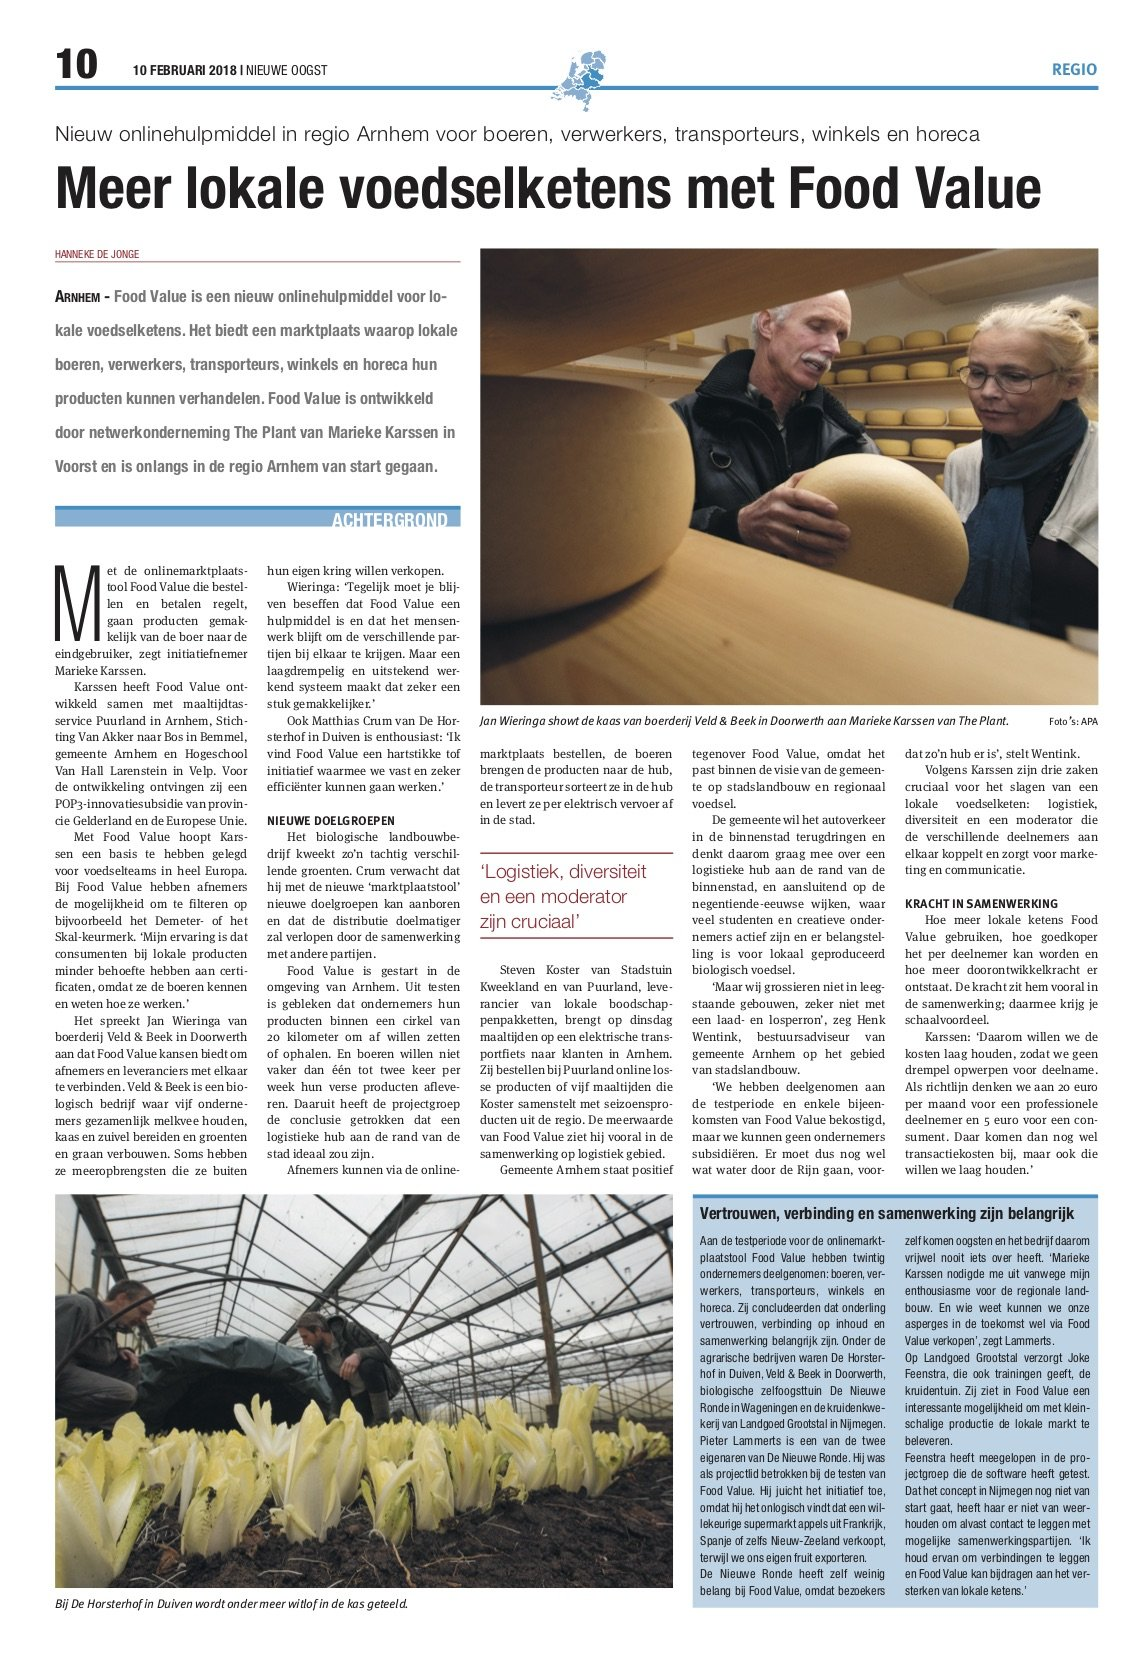 Artikel in nieuwe oogst over Food Value